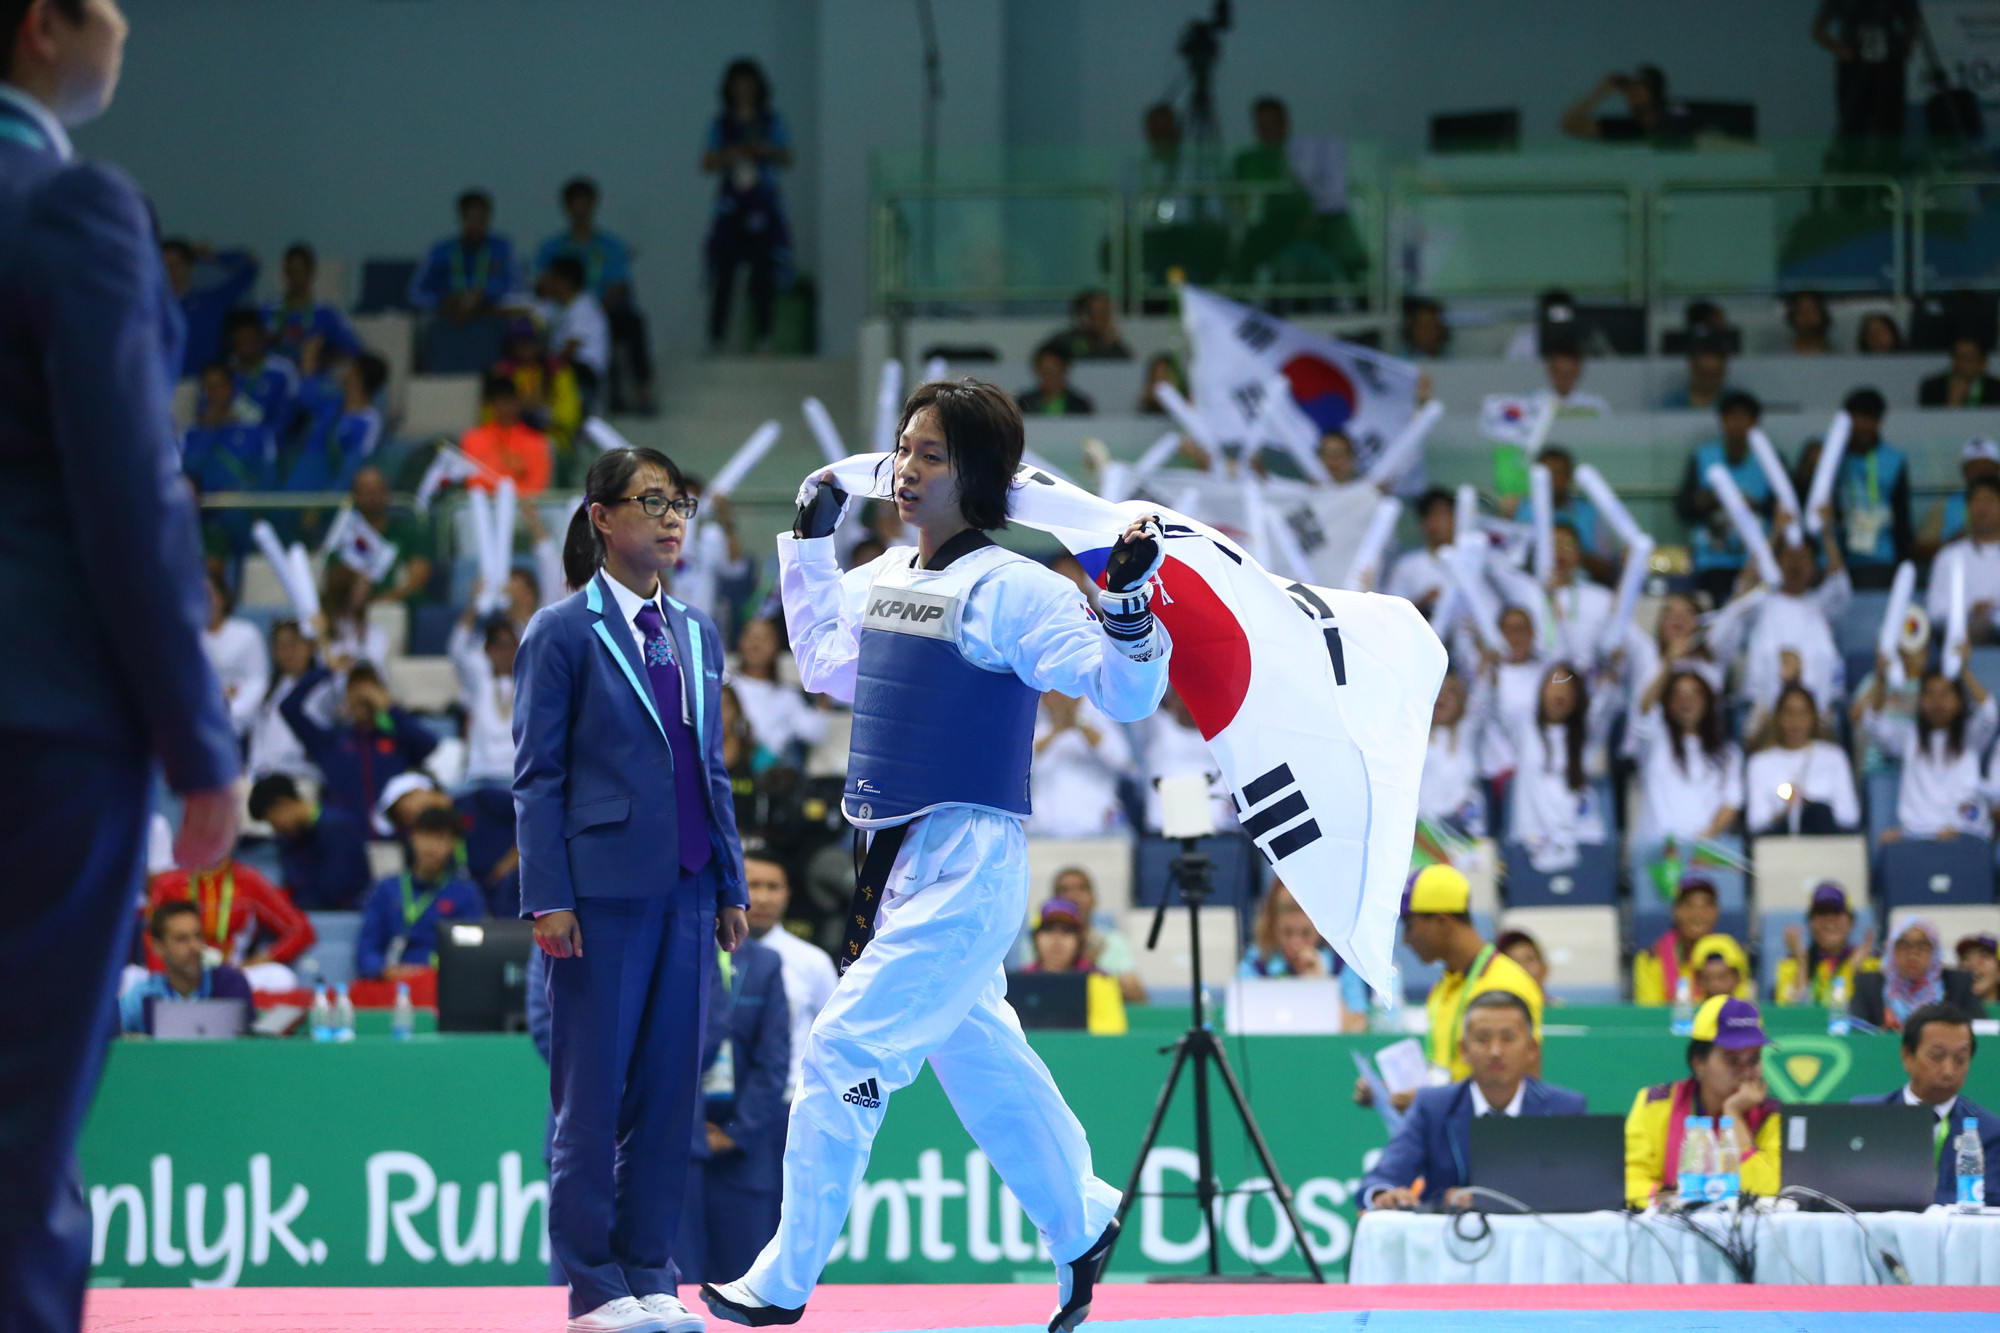 South Korea and Iran share spoils on day two of Ashgabat 2017 taekwondo action